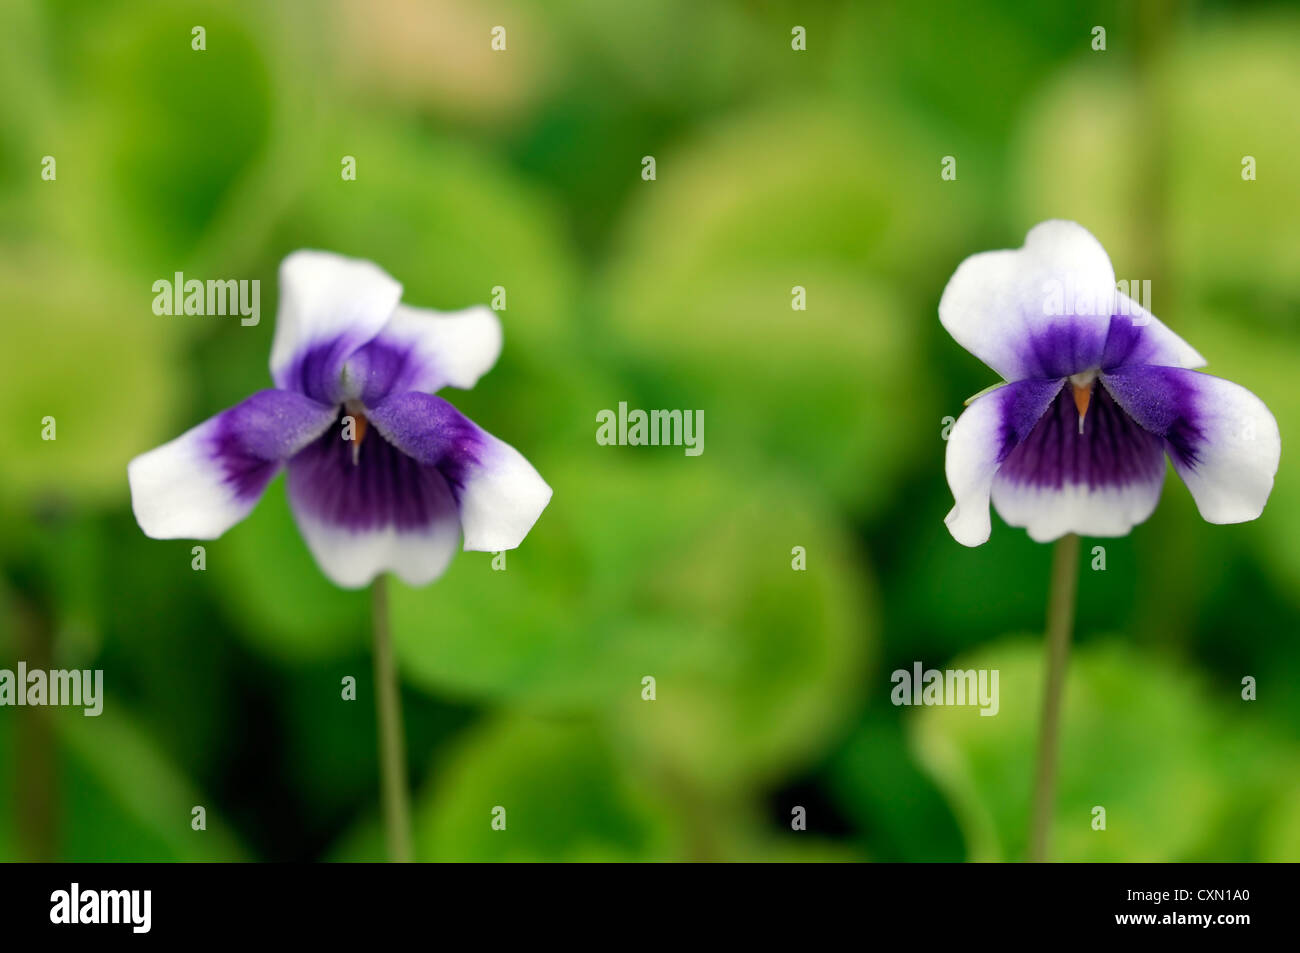 White Groundcover Stock Photos White Groundcover Stock Images Alamy